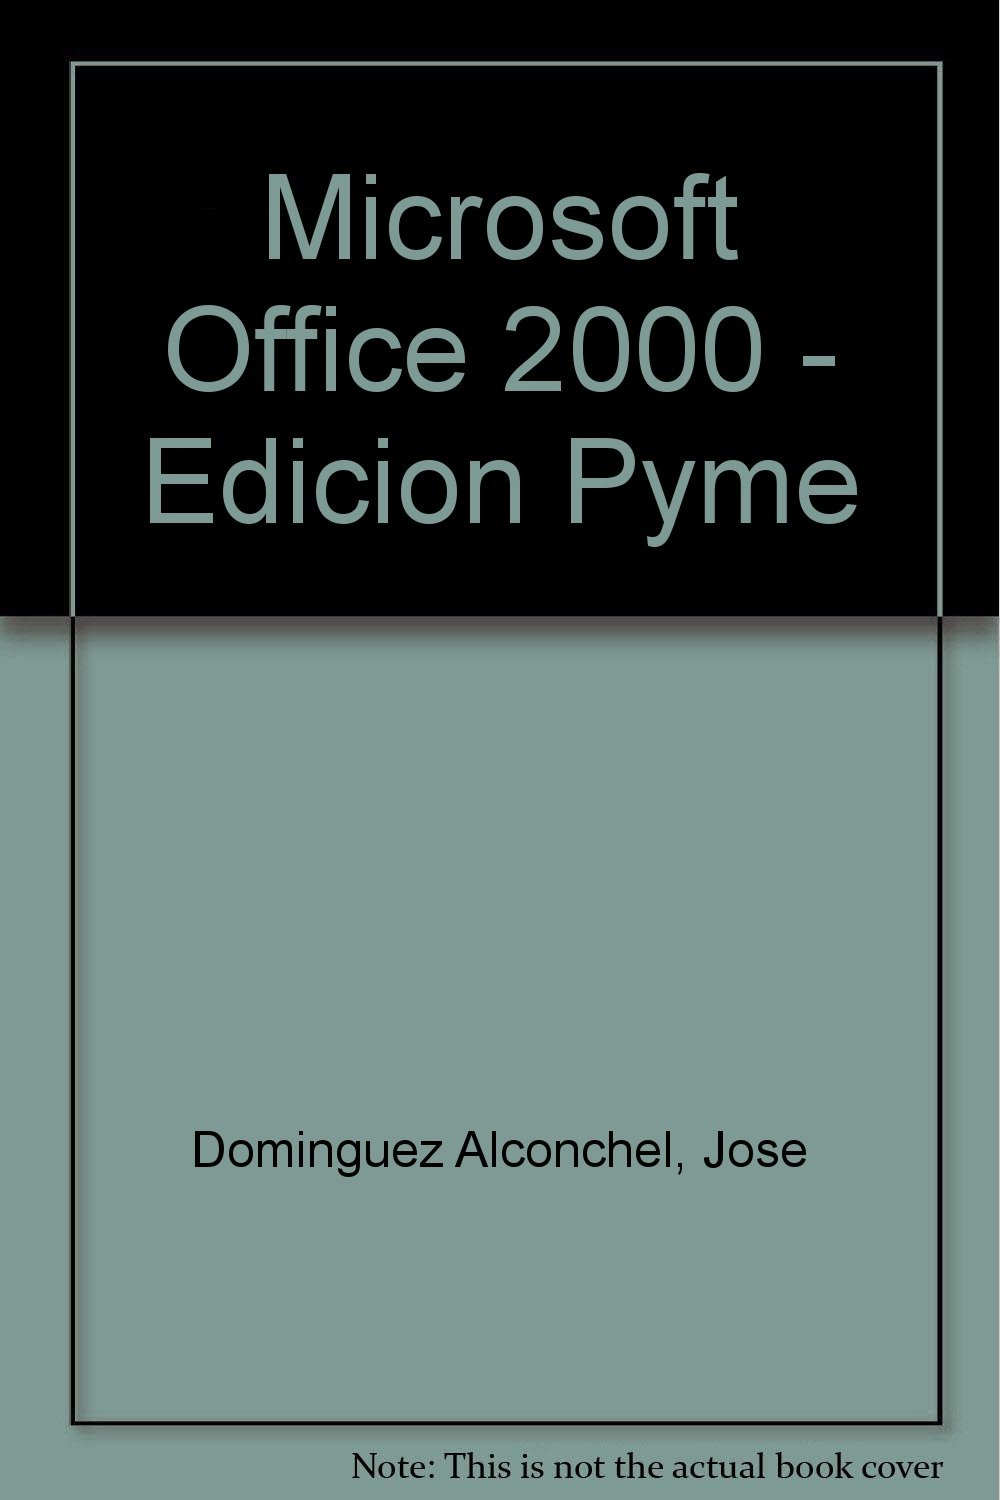 Microsoft Office 2000 - Edicion Pyme (Spanish Edition) pdf epub